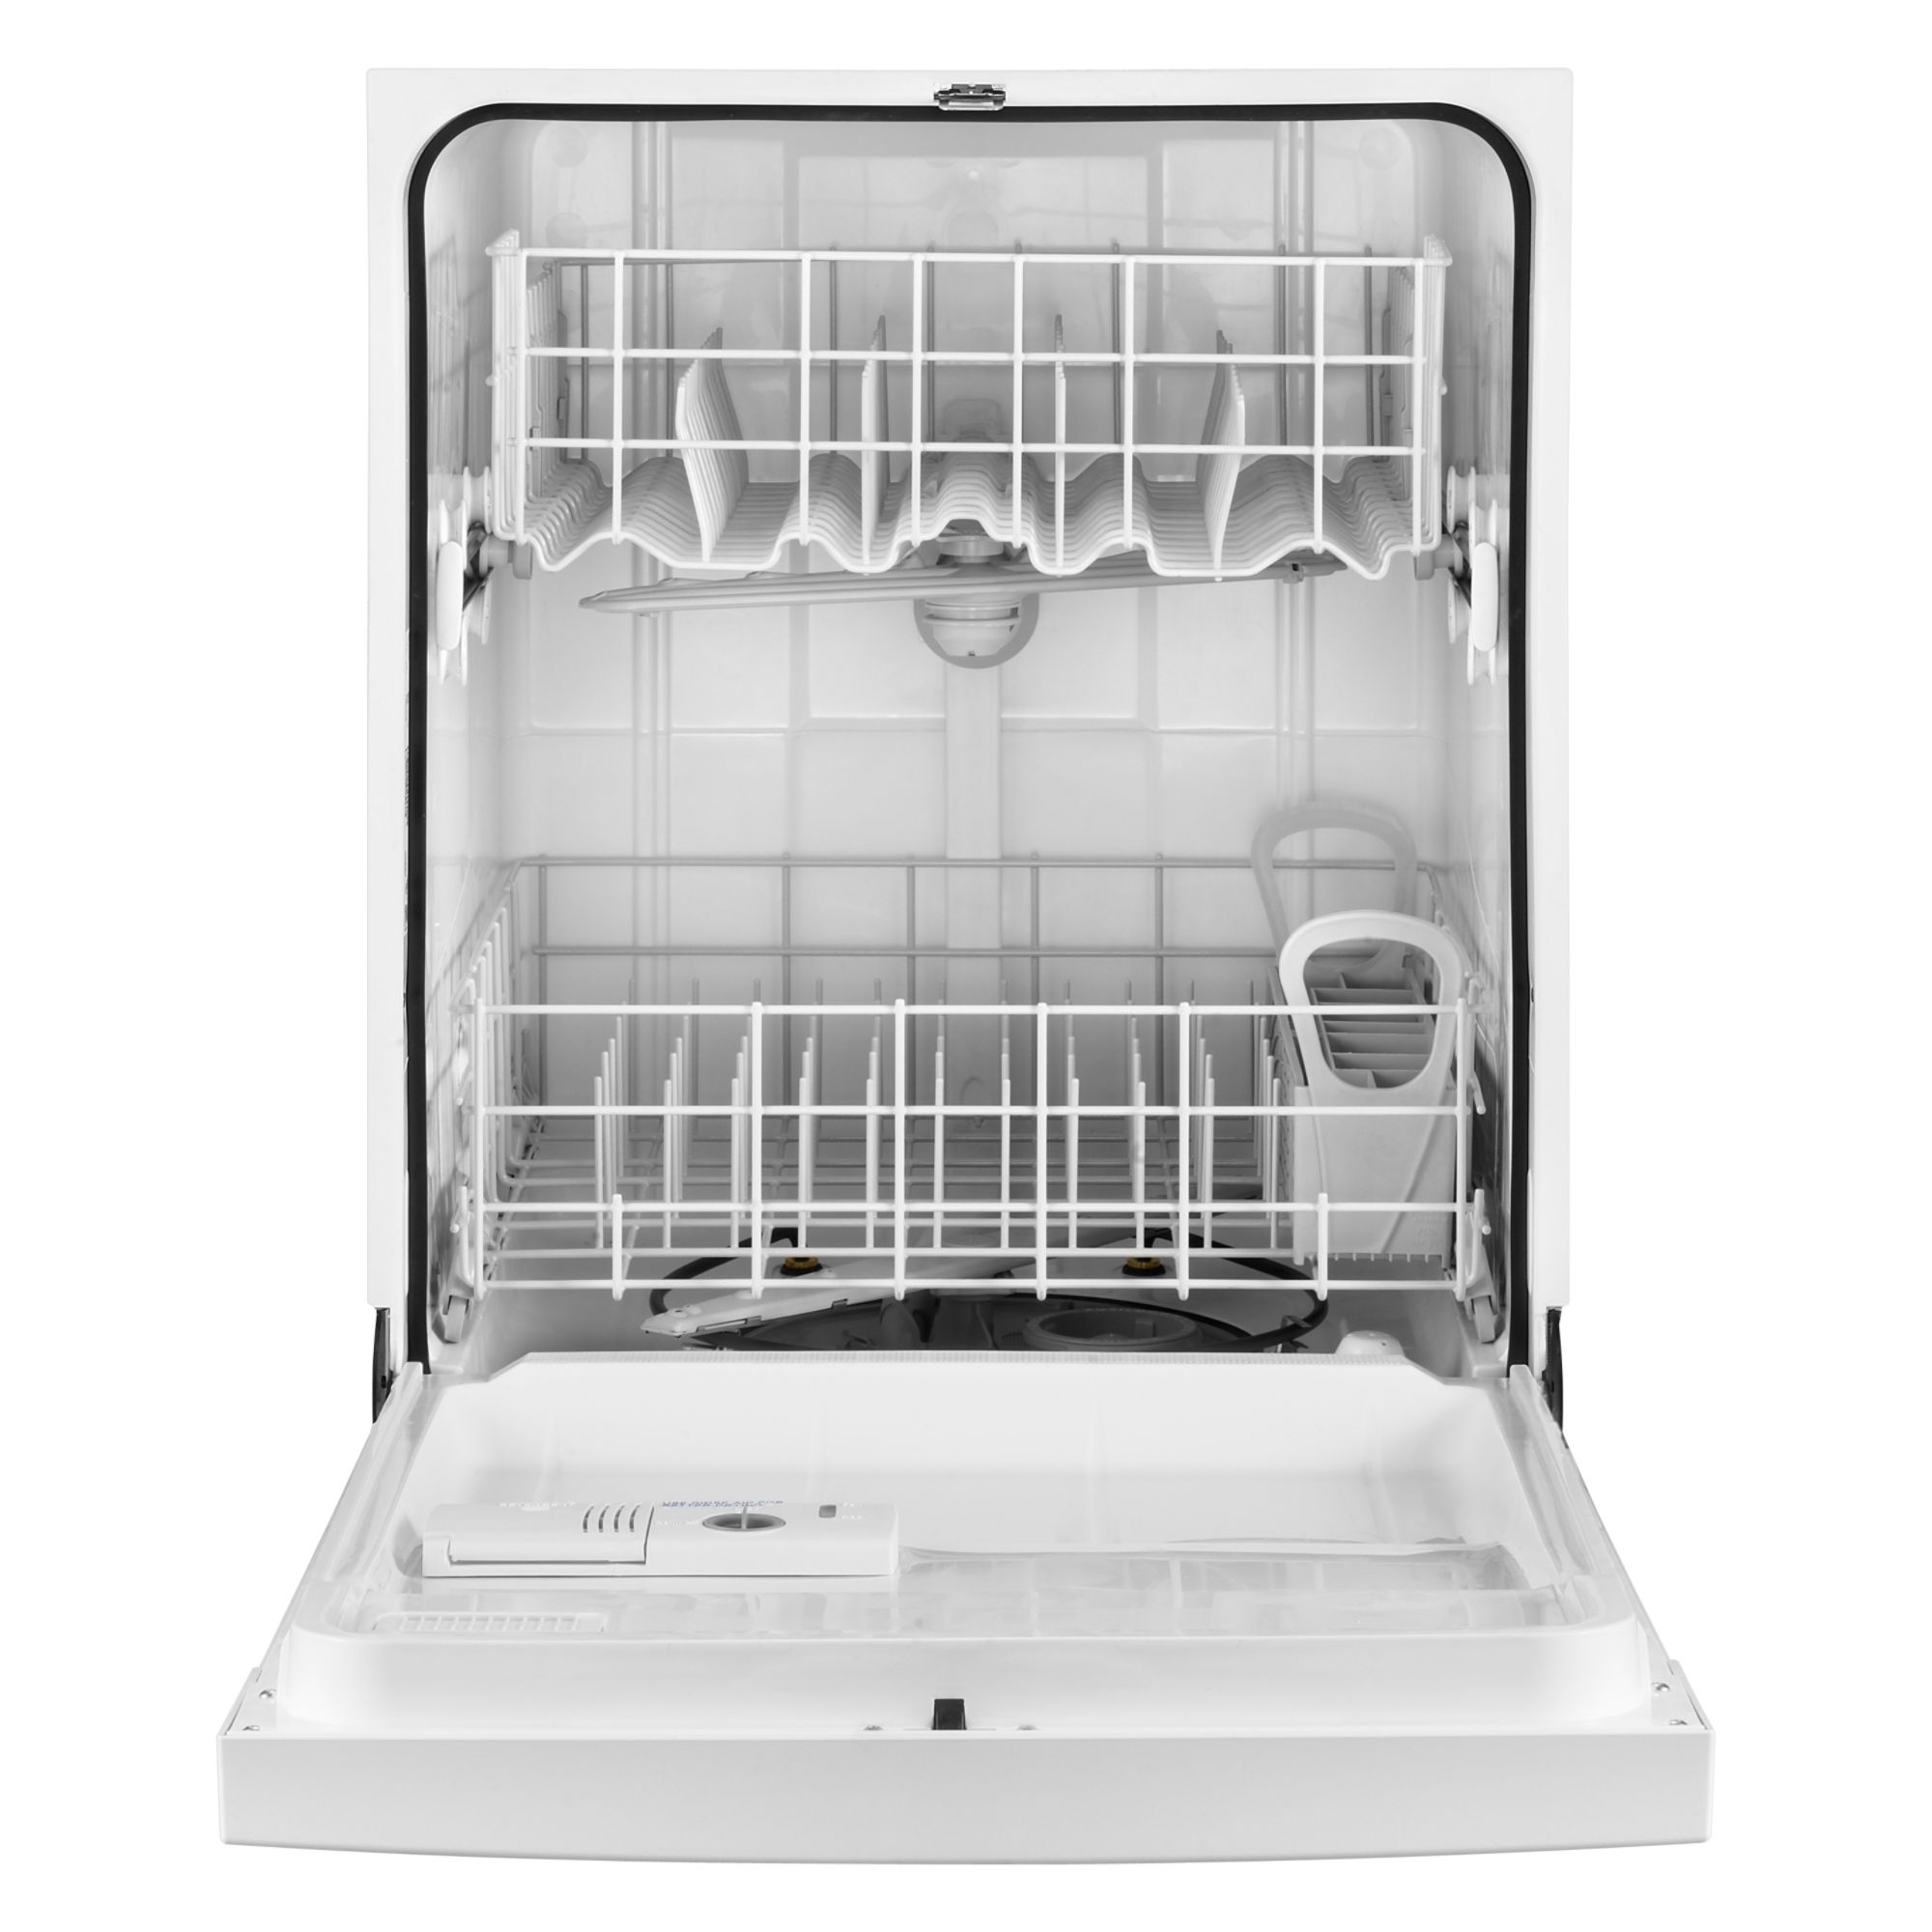 "Whirlpool 24"" Built-In Dishwasher w/ Resource-Efficient Wash System - Bisque"